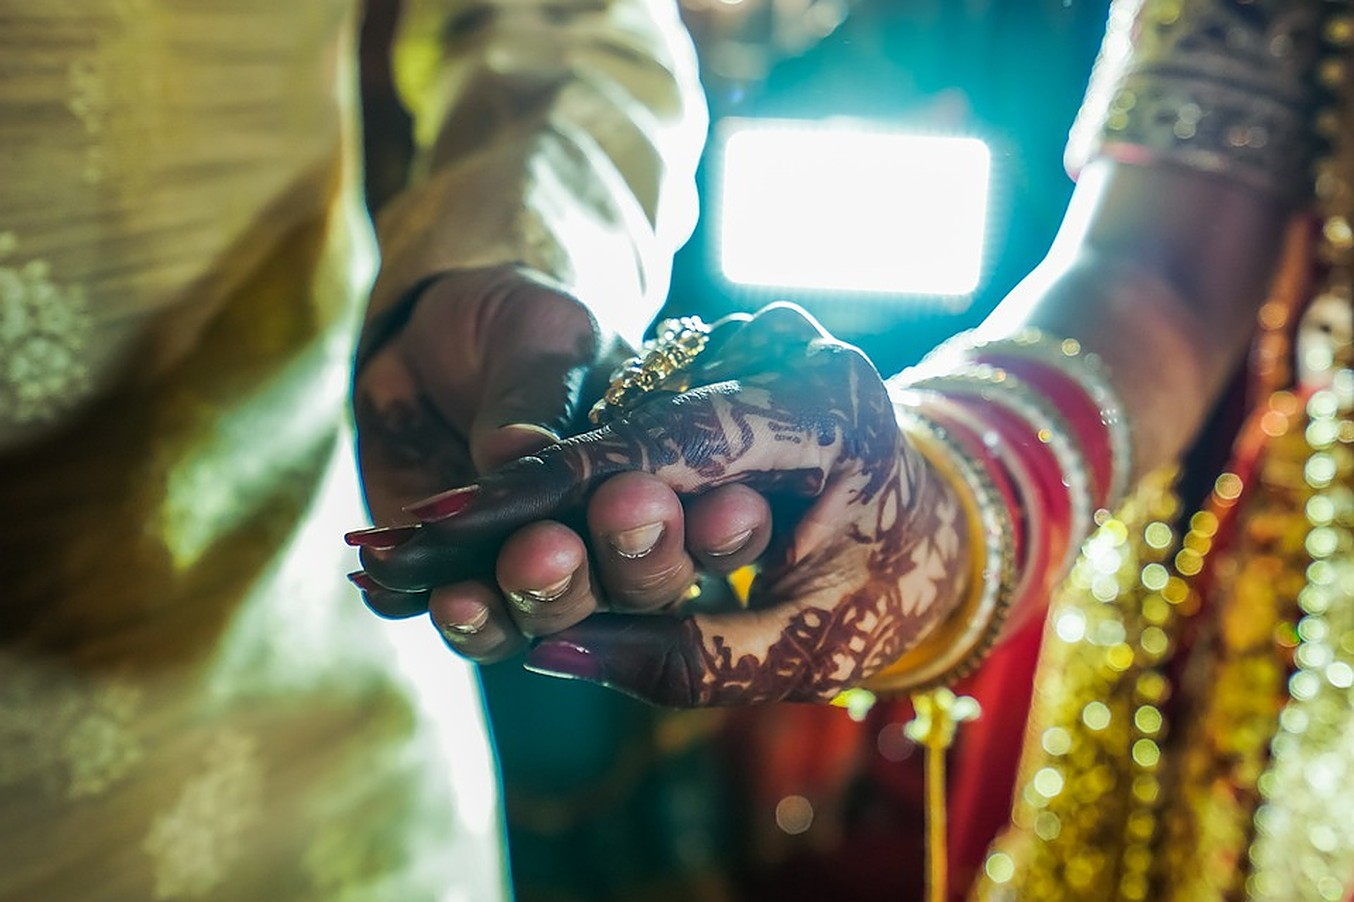 Marriage – A necessity or societal pressure